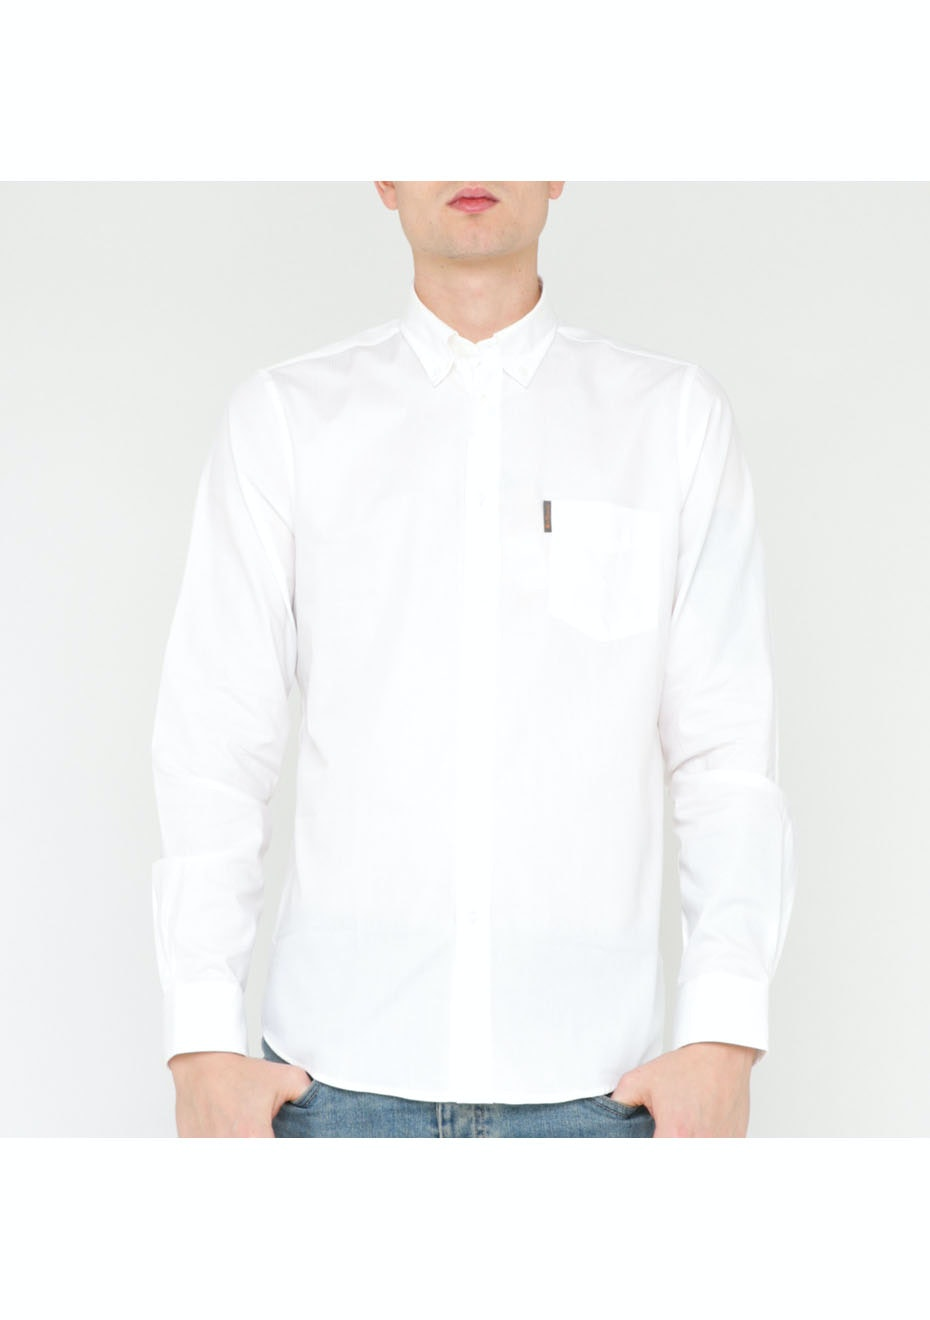 Ben Sherman L/S Plain Mod Shirt W/Pocket White